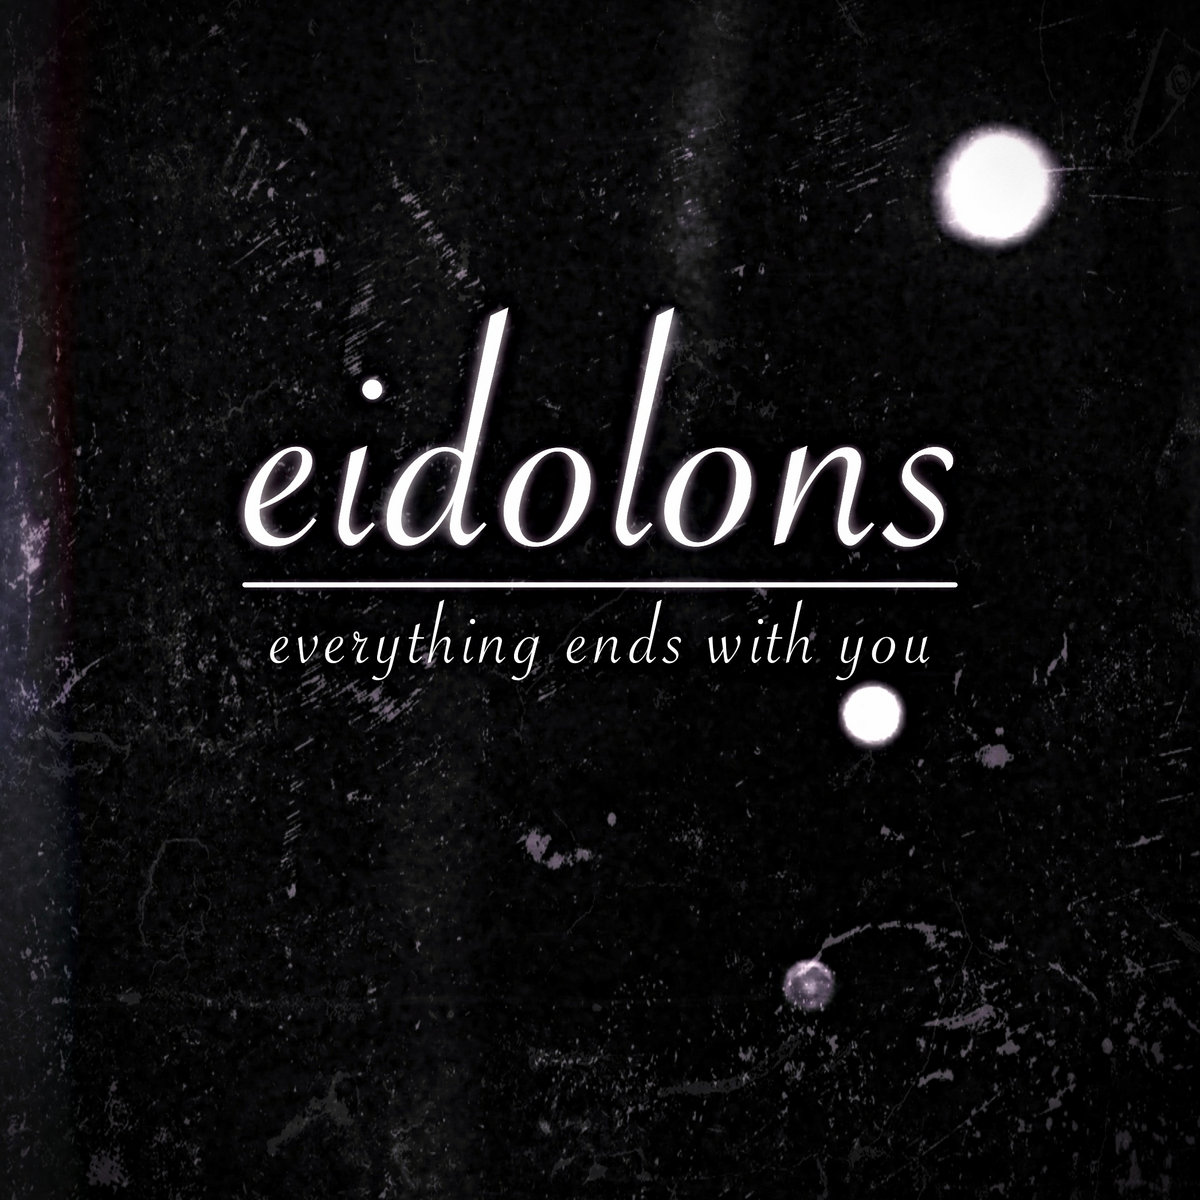 Eidolons - Everything Ends With You [EP] (2017)